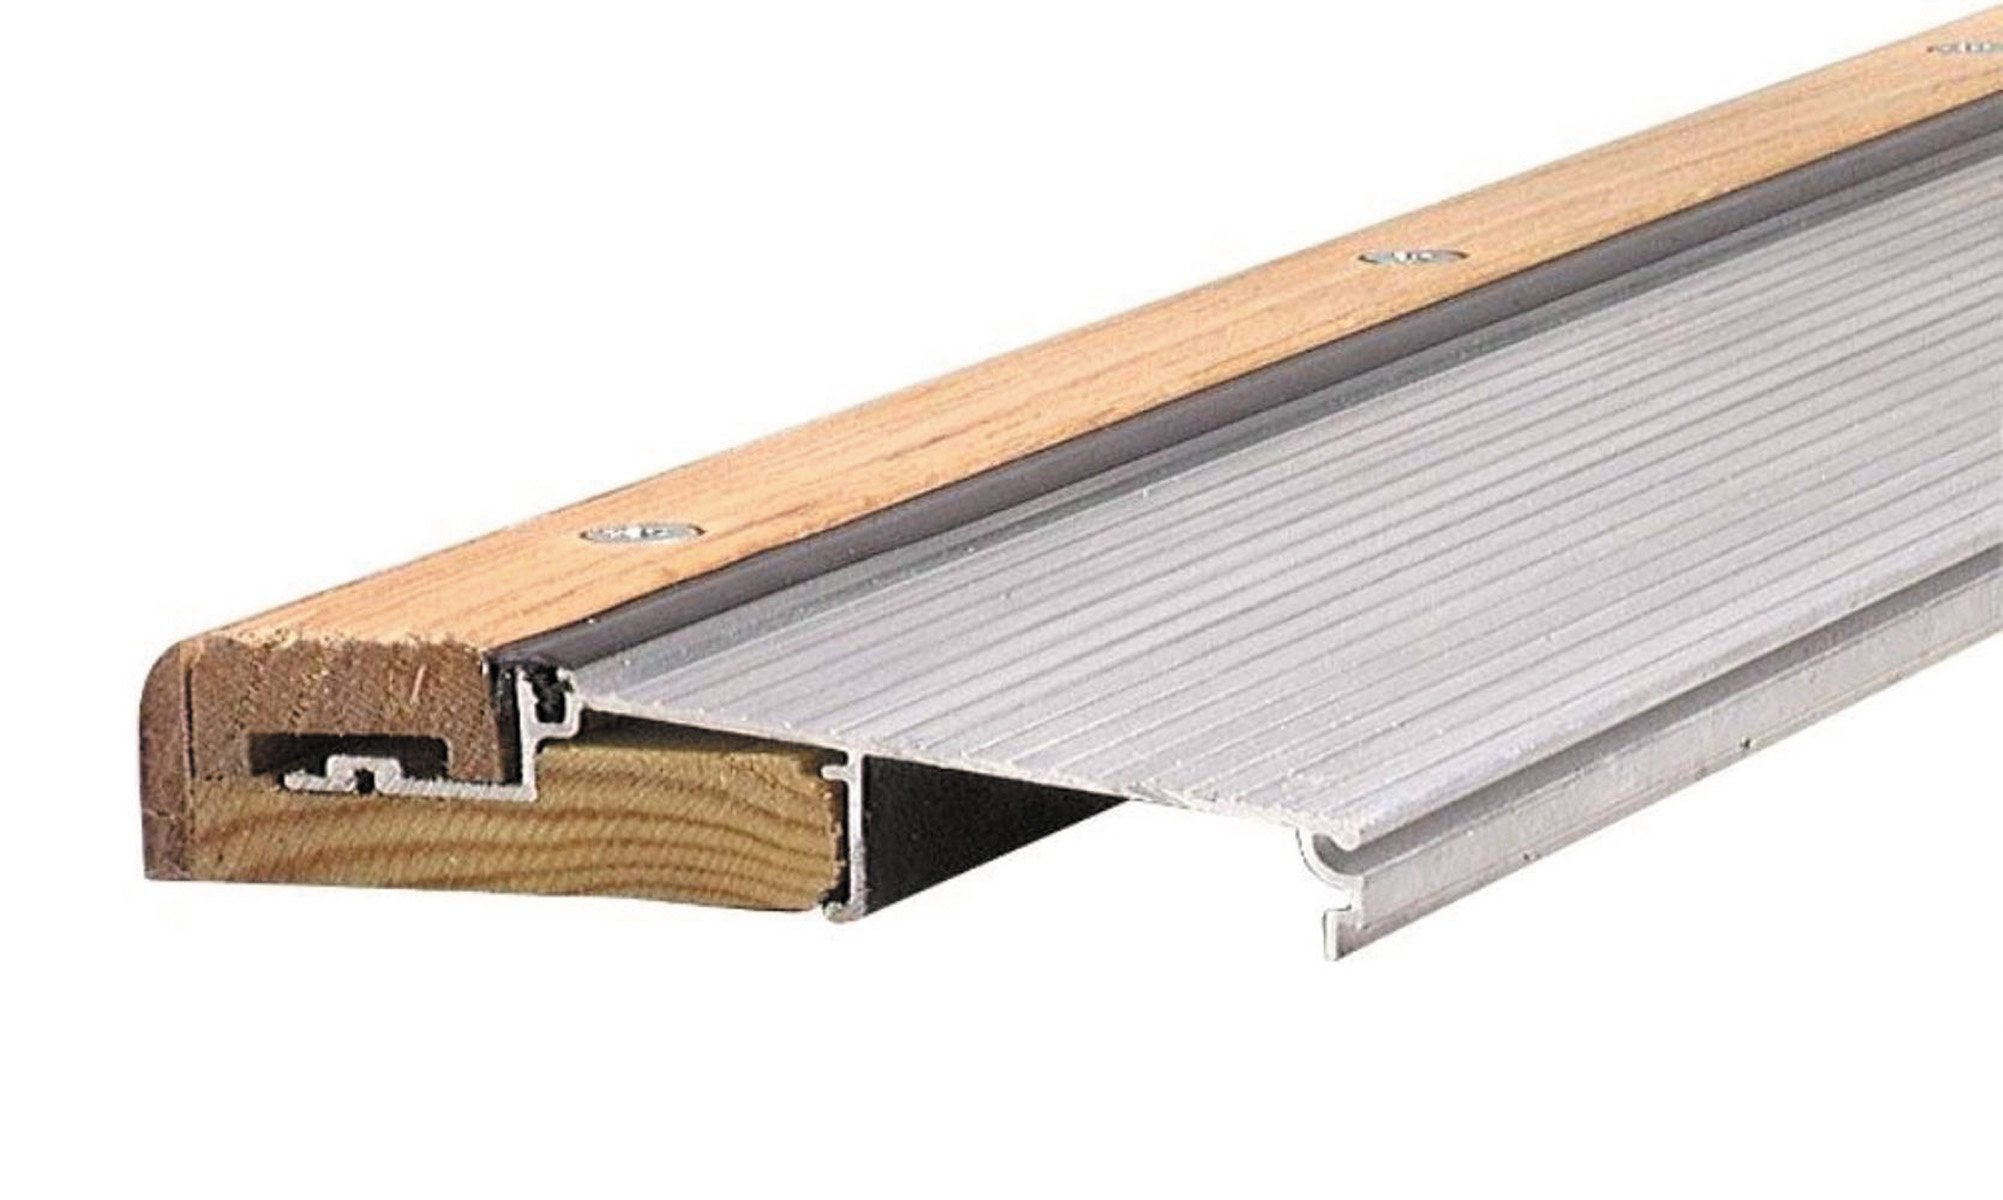 M-D Building Products 78600 1-1/8-Inch by 5-5/8-Inch - 36-Inch TH394 Adjustable Aluminum and Hardwood Sill Inswing, Mill